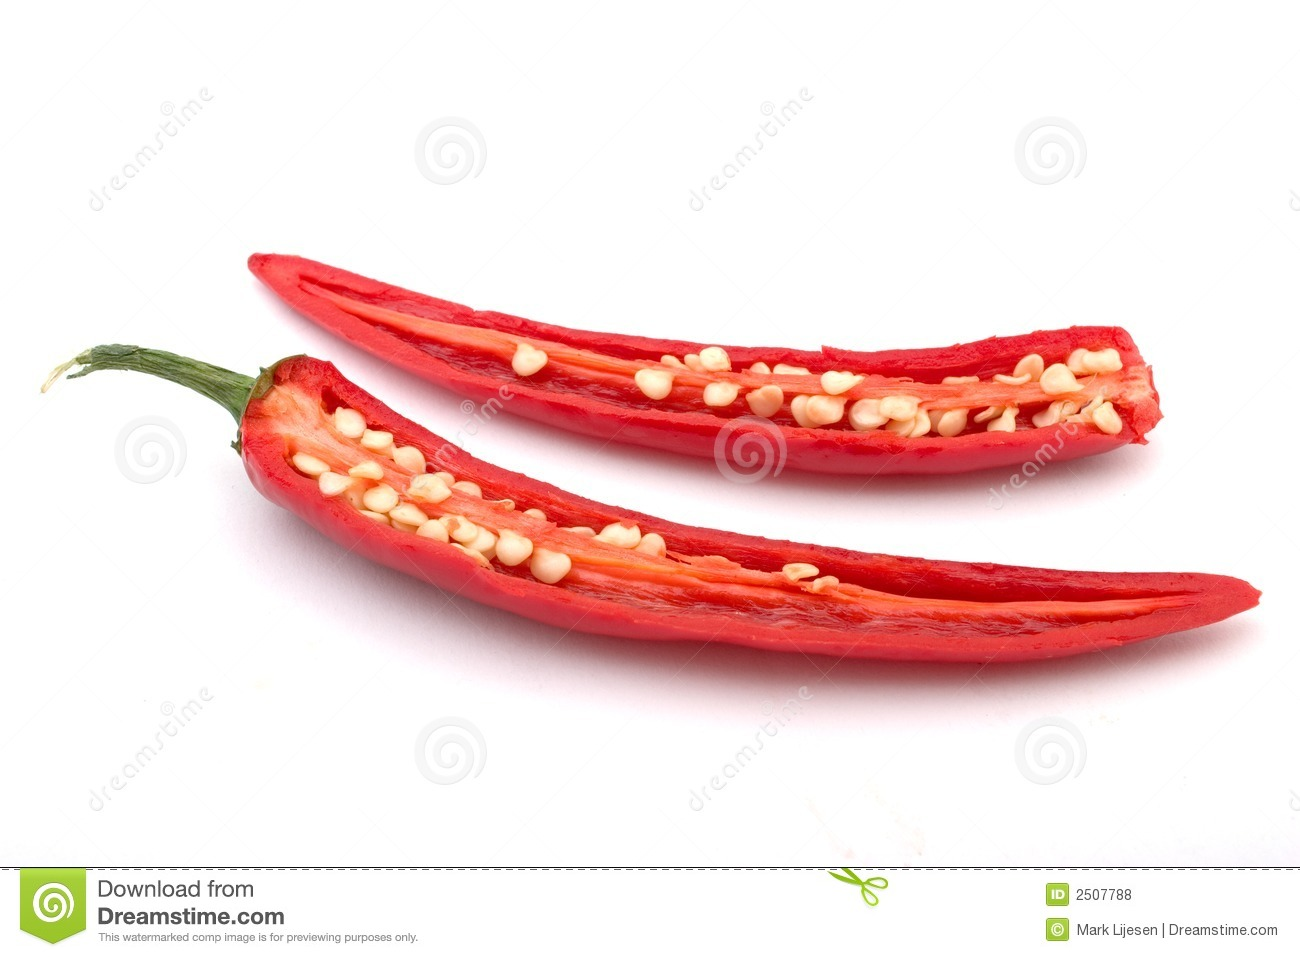 8b6627b42be9 Cut chili pepper stock photo. Image of vegetable